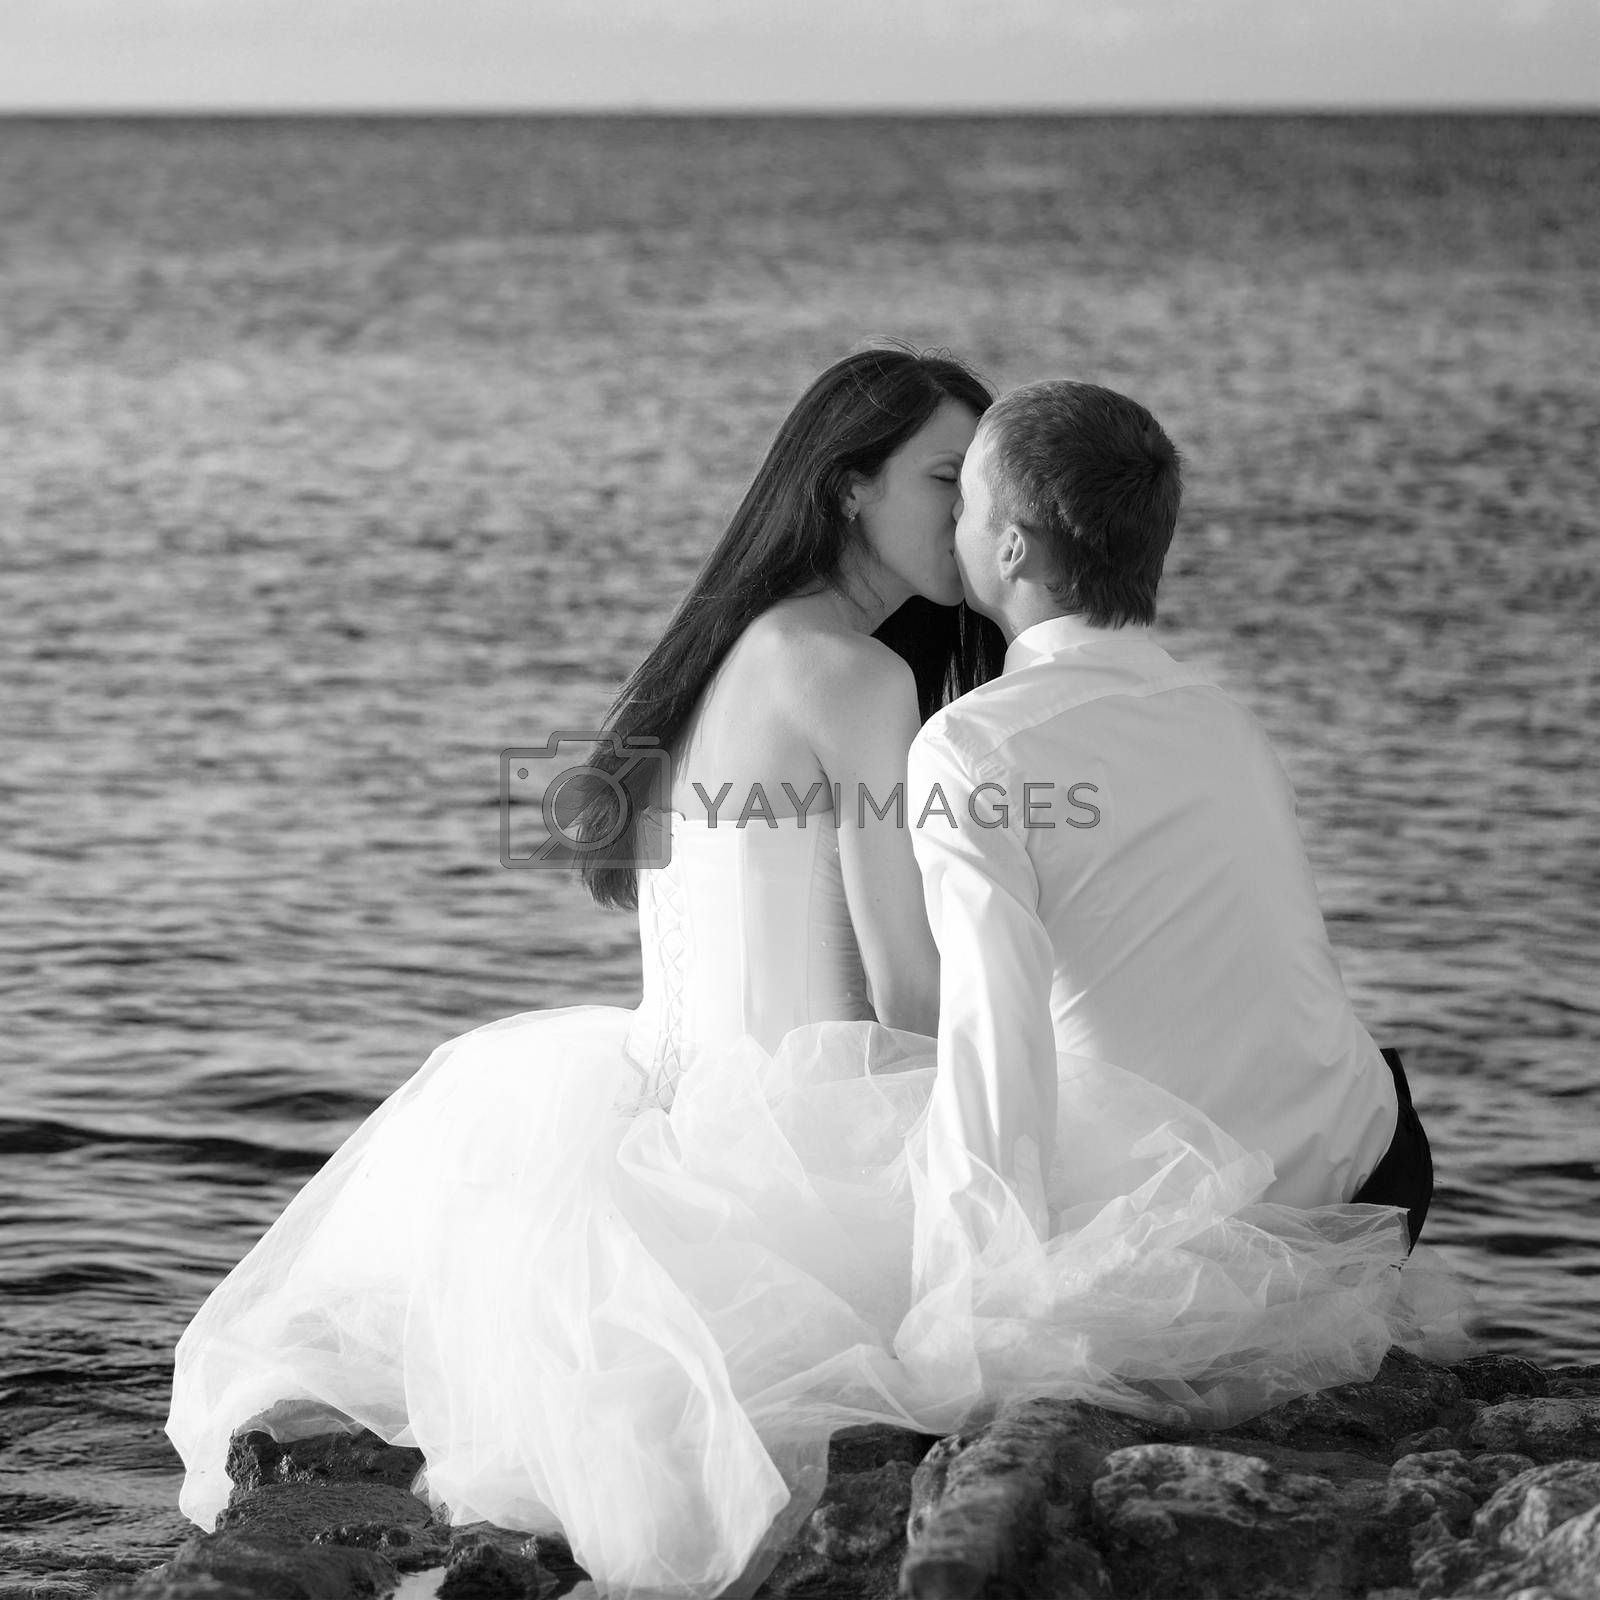 Beautiful wedding couple- bride and groom kissing at the beach. Just married. Black and white